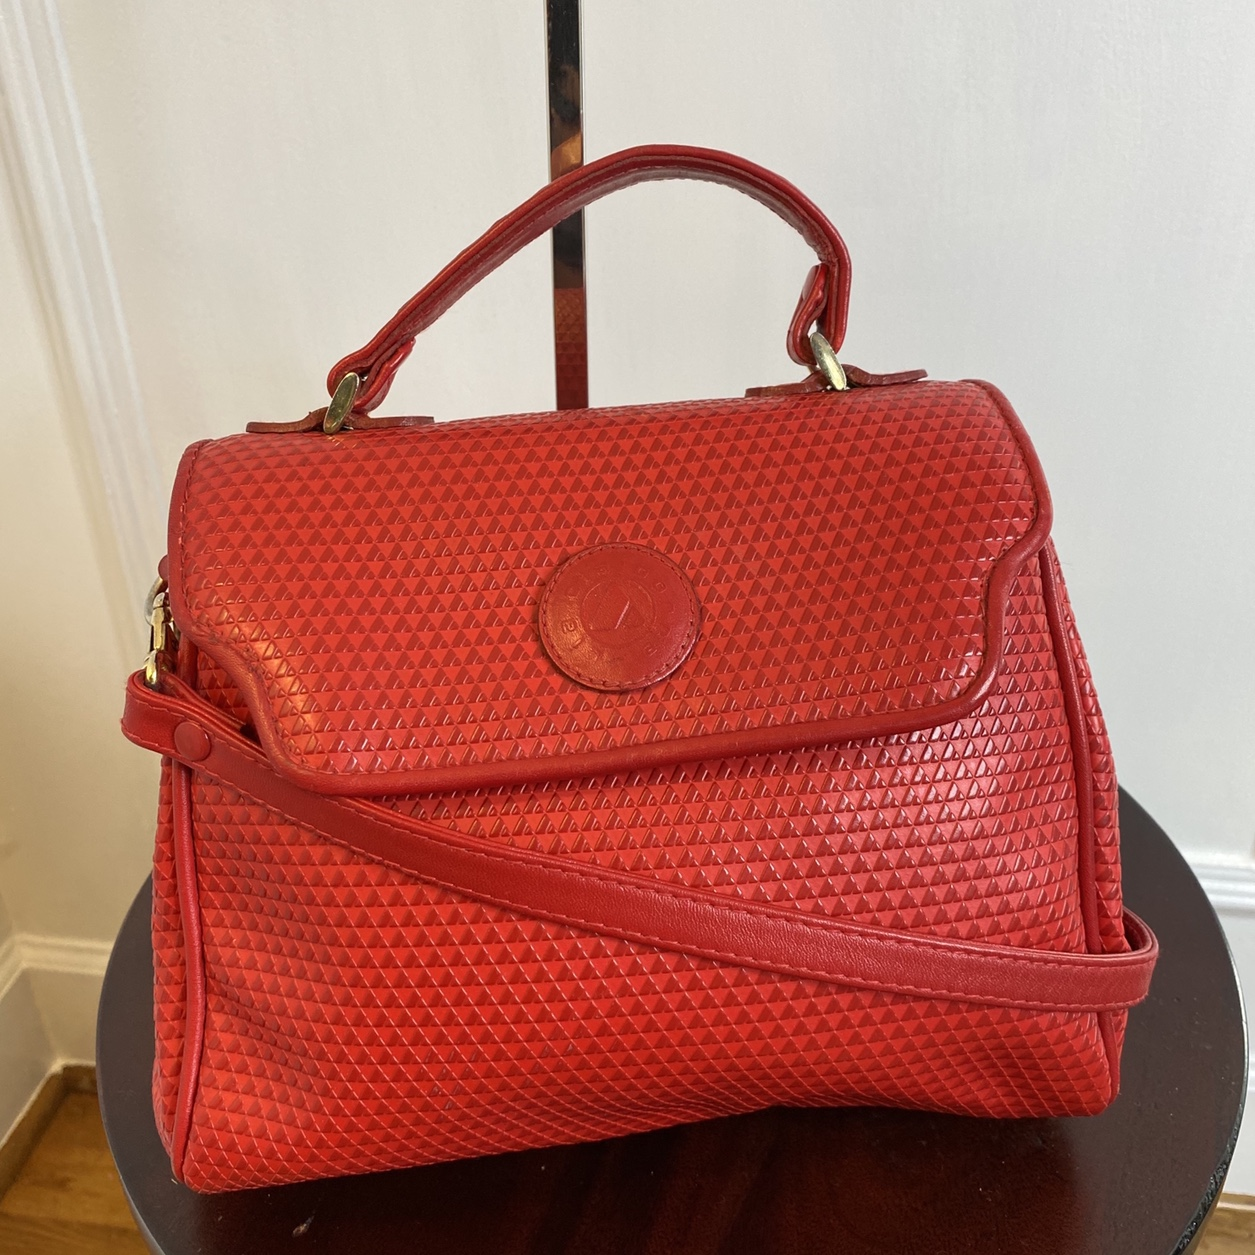 Red Liz Claiborne top handle bag